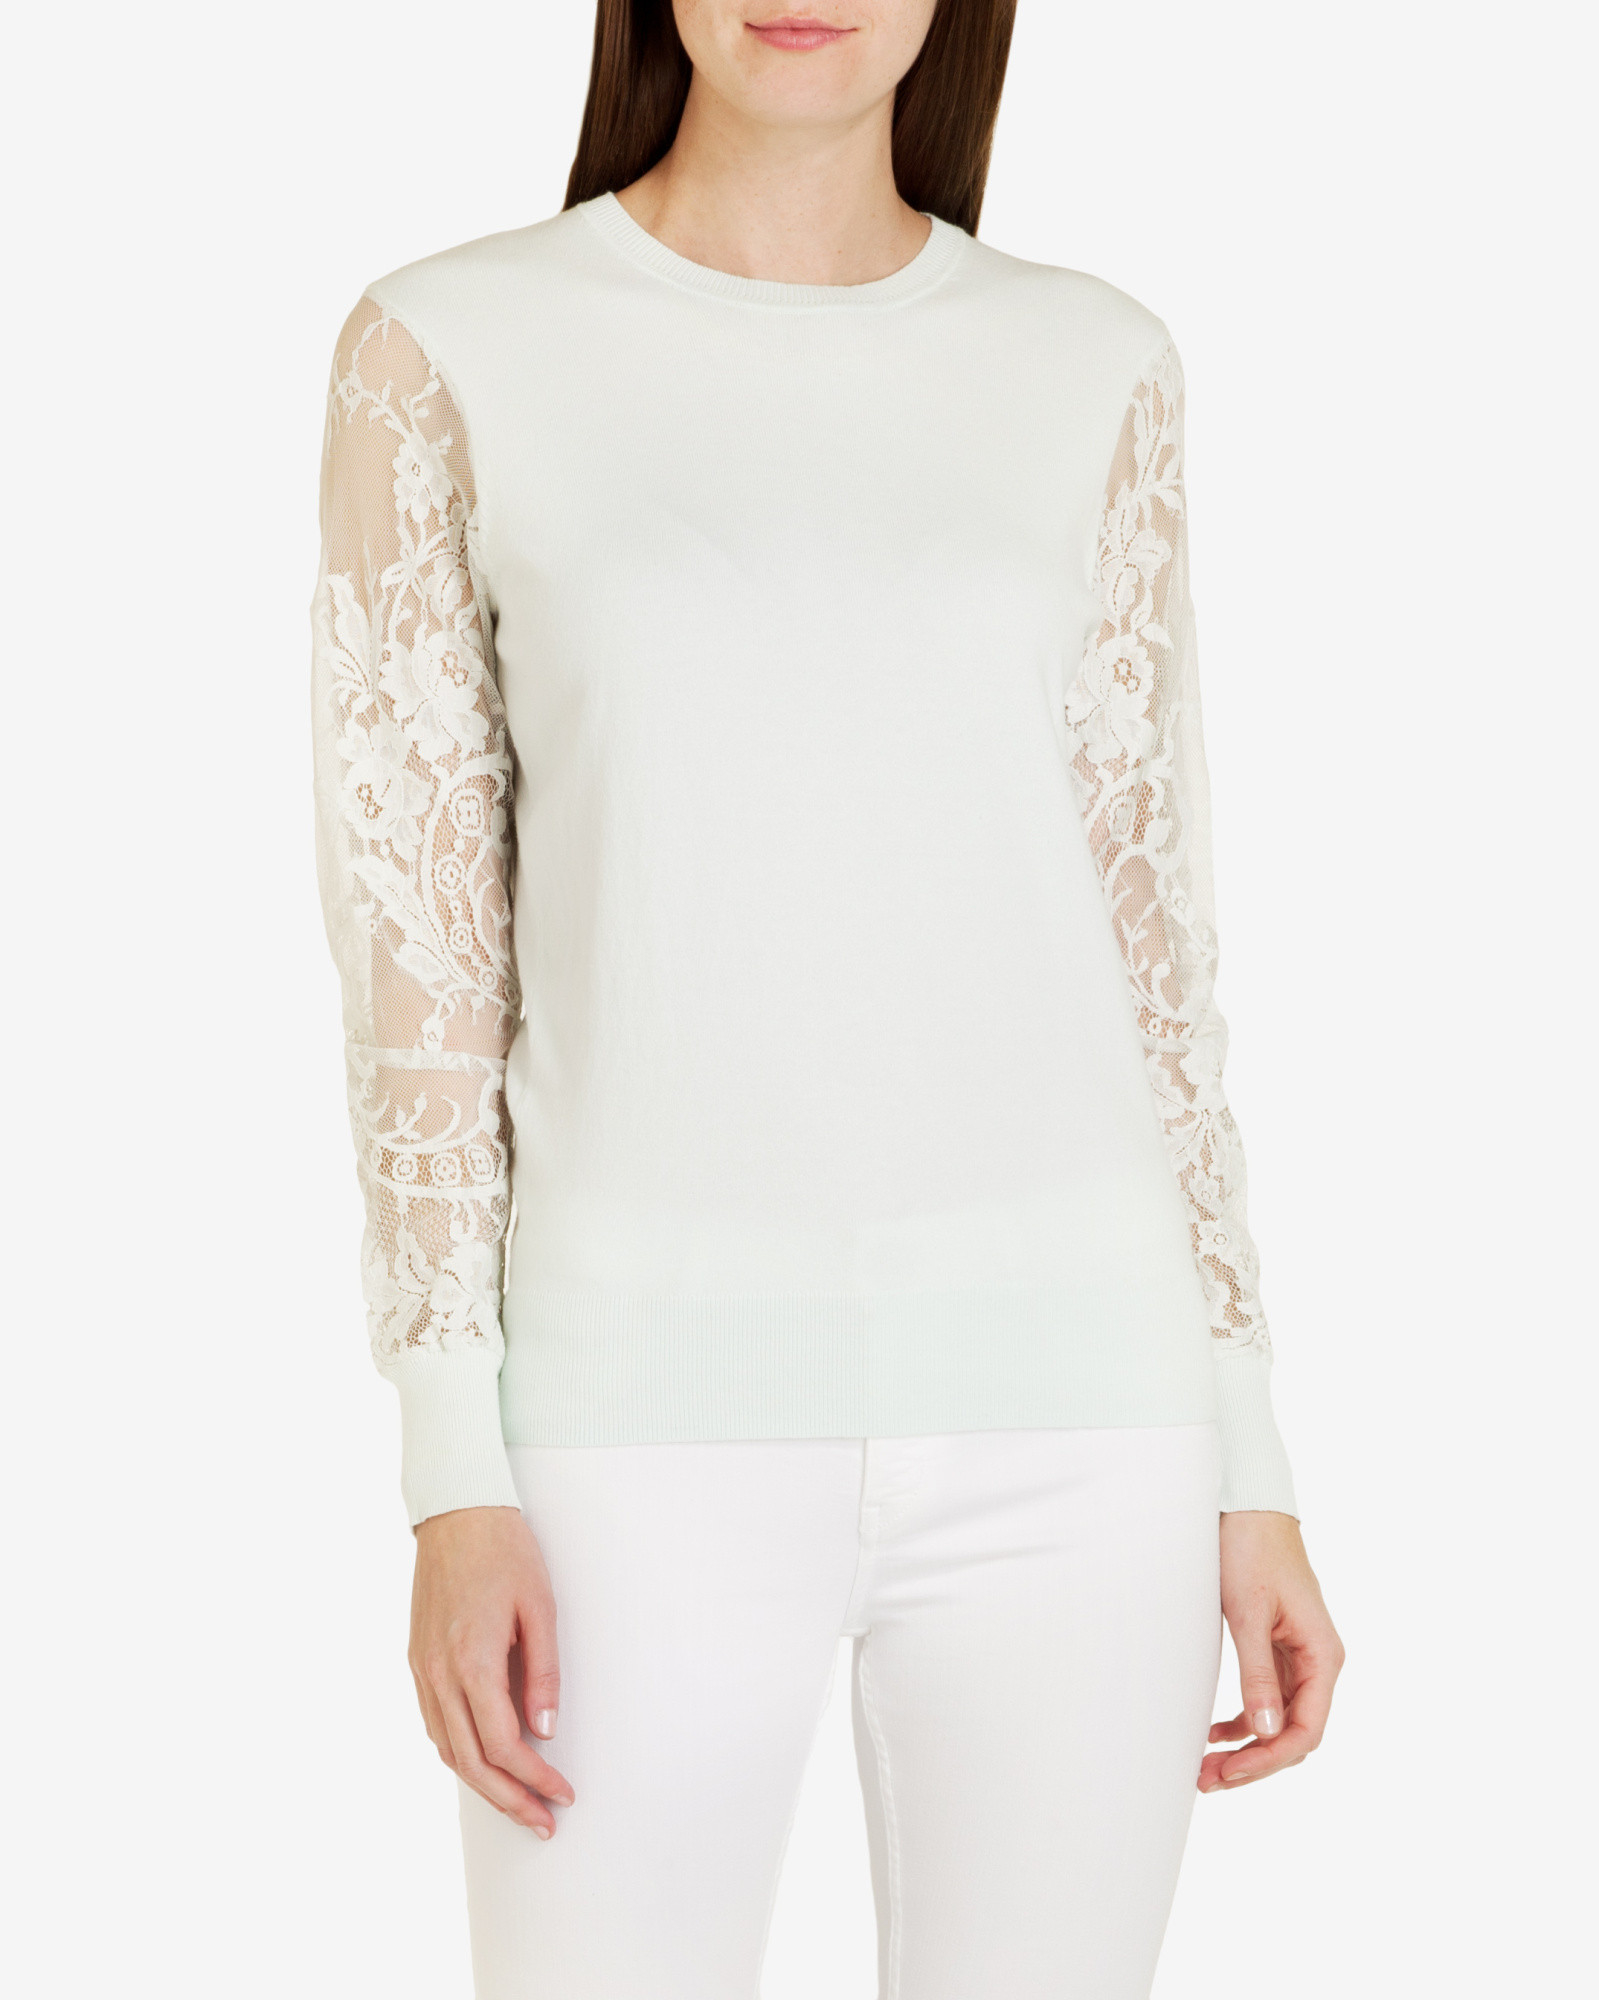 9c5509bdf Lyst - Ted Baker Lace Detail Sweater in Green